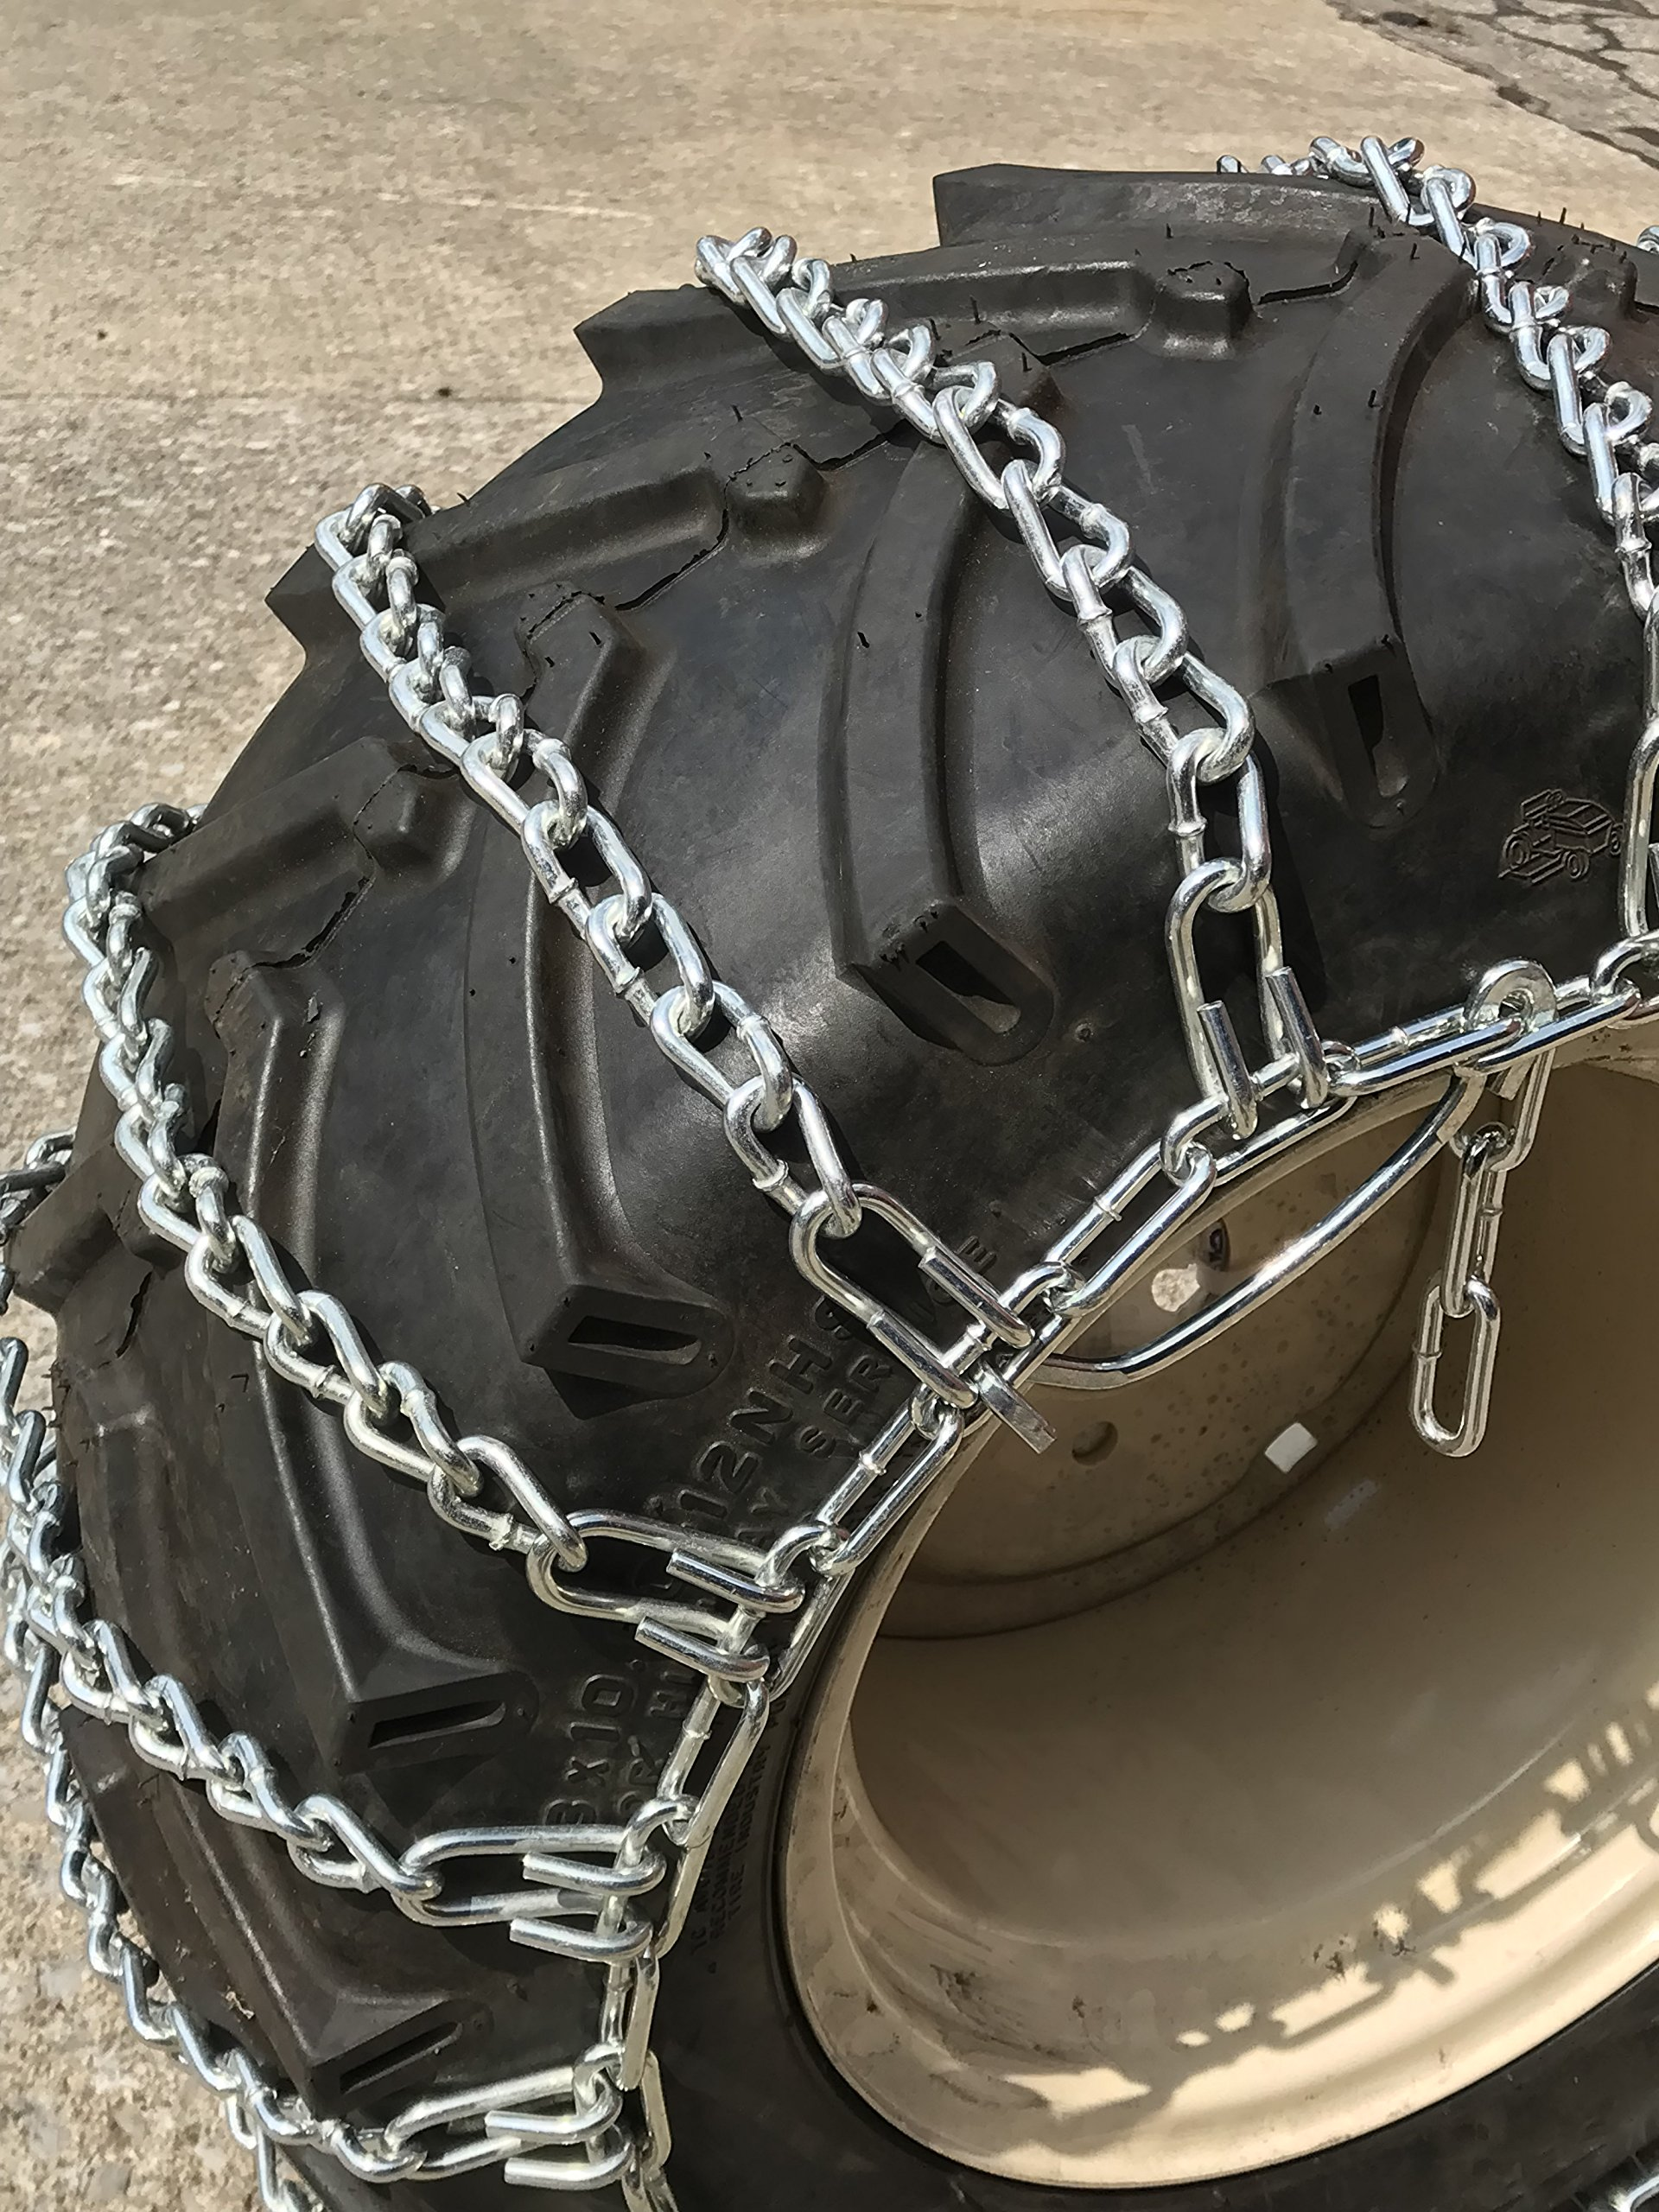 TireChain.com Heavy Duty, 2-link Lawn and Garden Tire Chains, Priced per pair. 23 X 9.50 X 12, 23 X 10.50 X 12 by TireChain.com (Image #3)